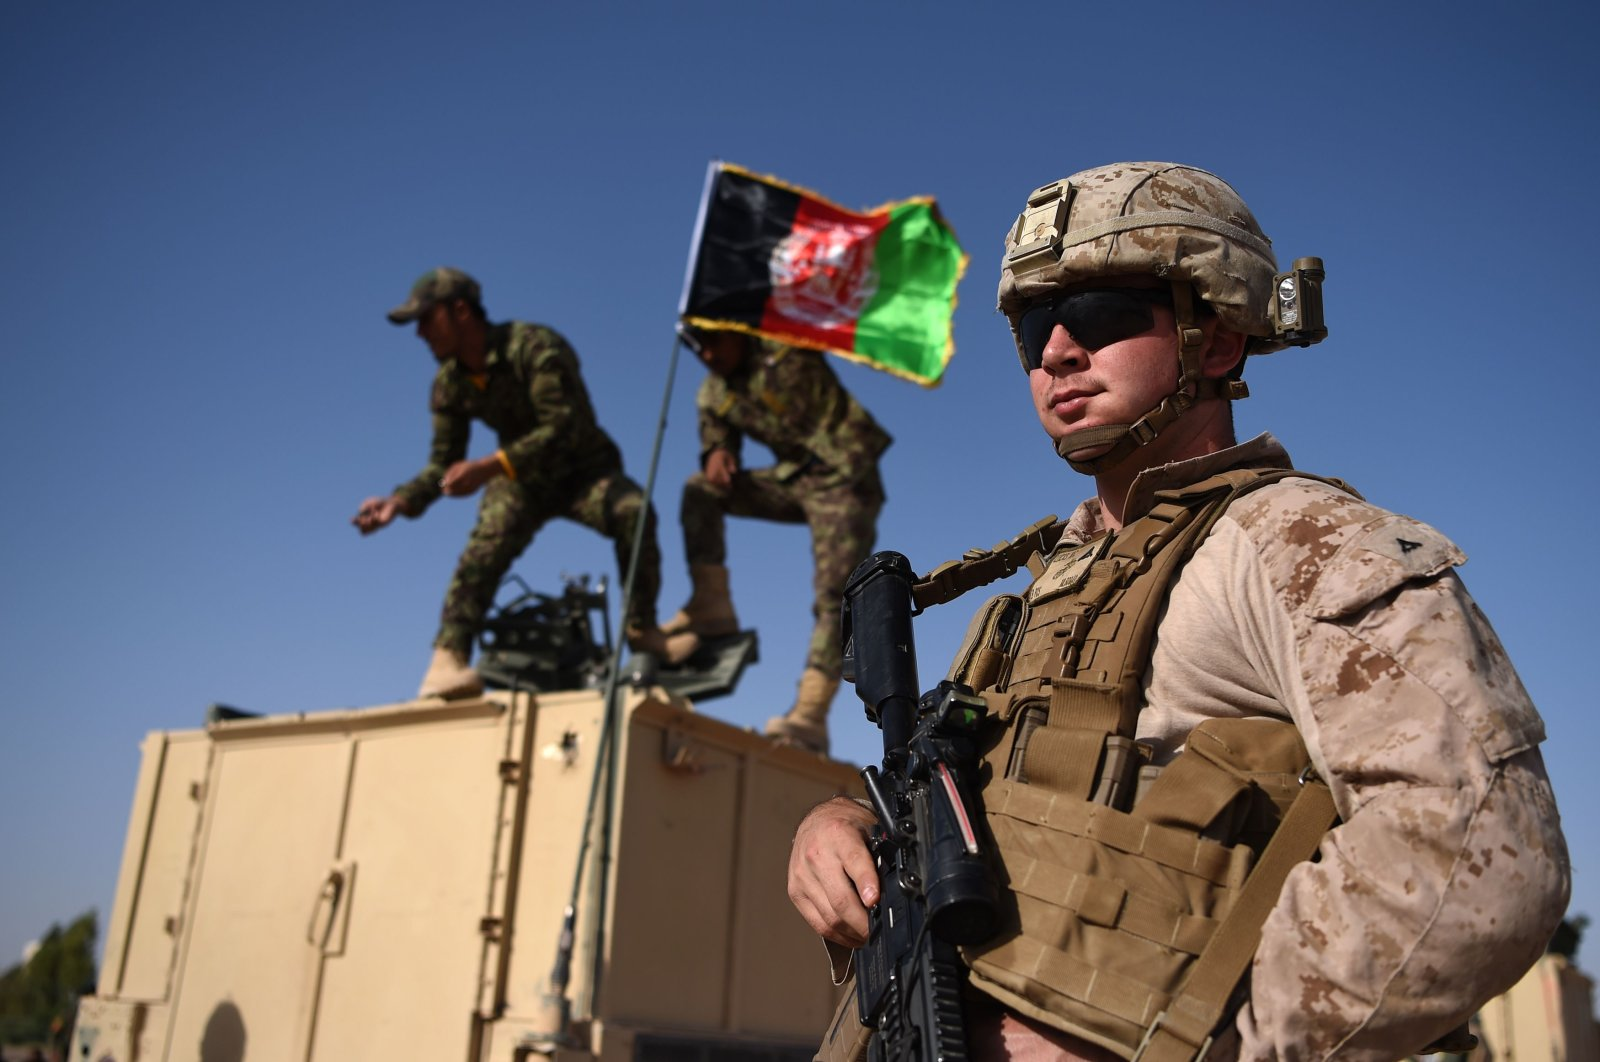 A US Marine looks on as Afghan National Army soldiers raise the Afghan National flag on an armed vehicle during a training exercise to deal with IEDs (improvised explosive devices) at the Shorab Military Camp in Lashkar Gah in Helmand province, Aug. 28, 2017. (AFP)